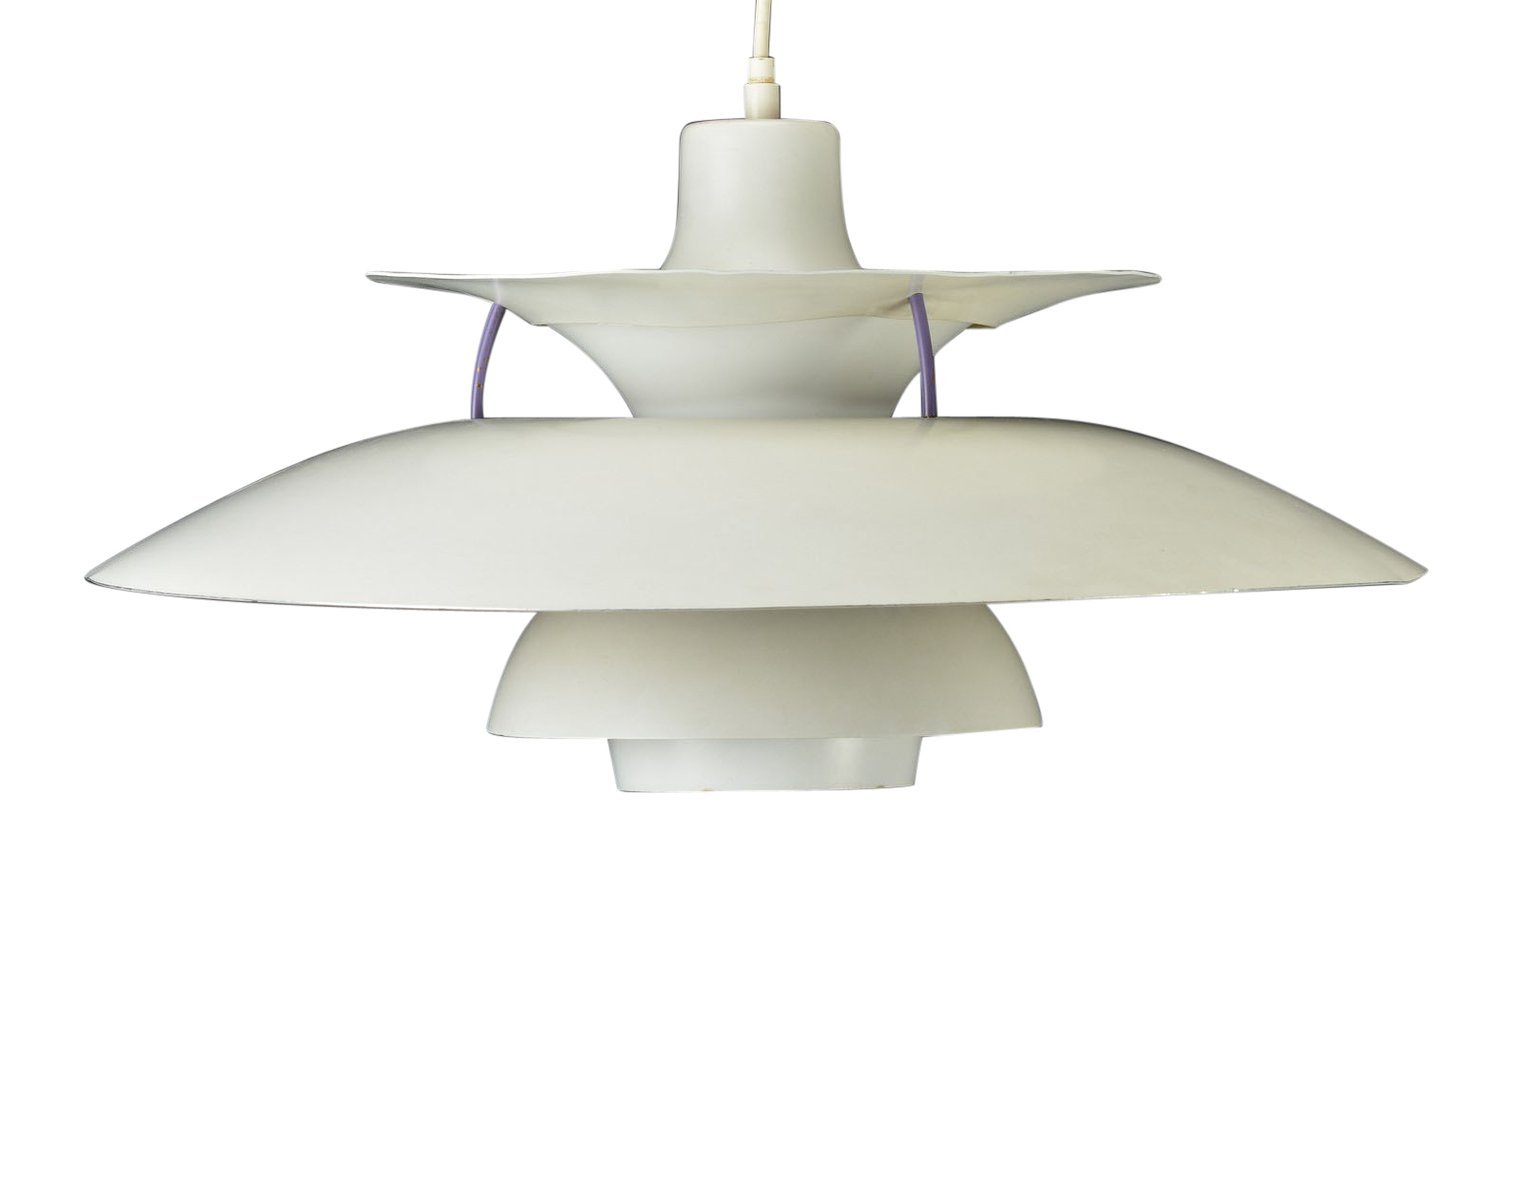 Poul Henningsen Lampe Vintage White Lacquered Ph 5 Pendant Lamp By Poul Henningsen